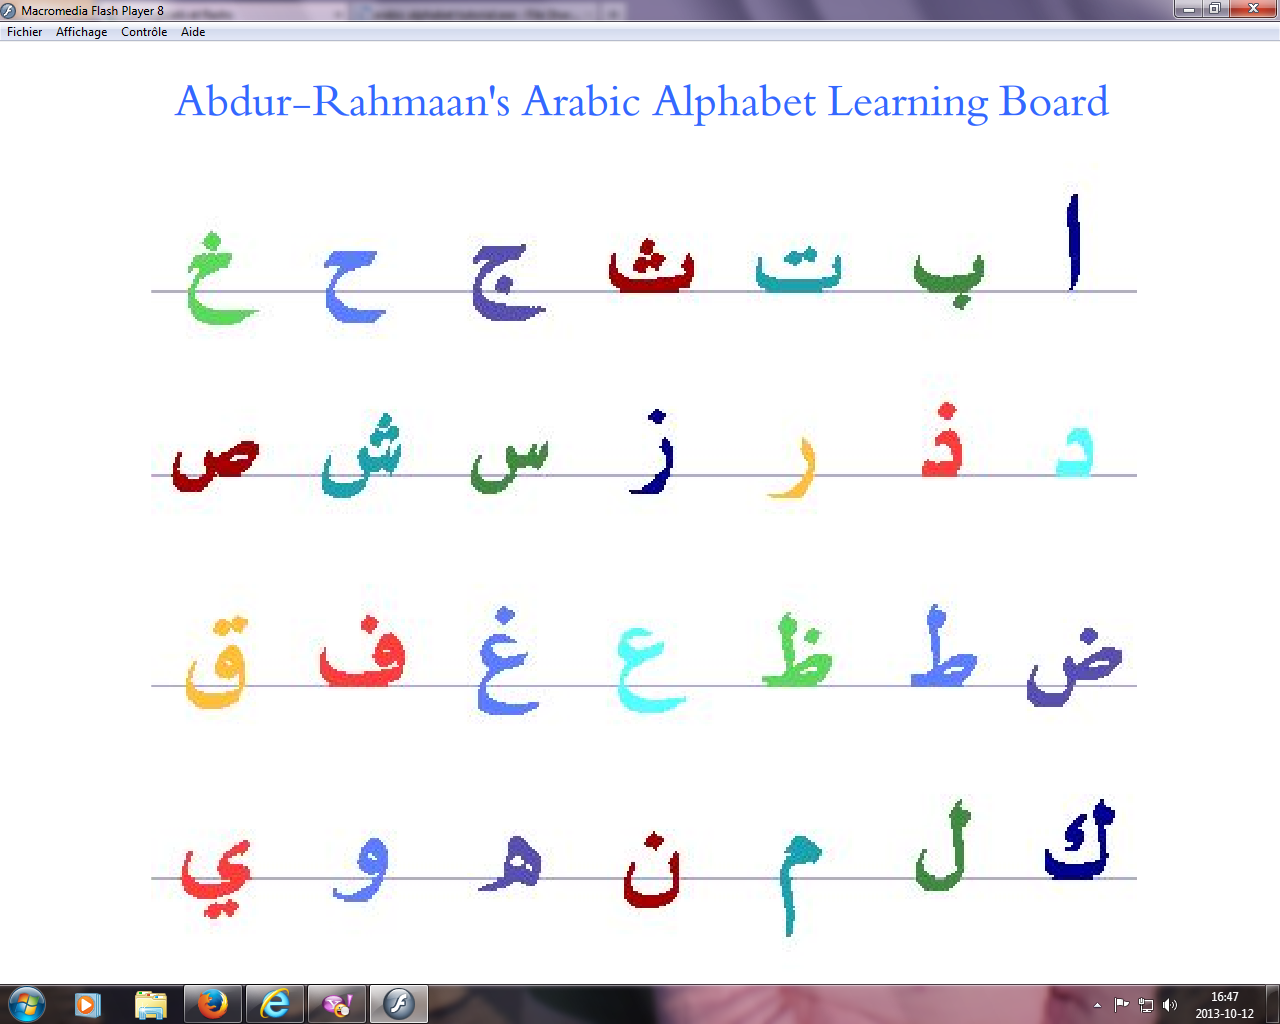 animation flash sur lalphabet arabe